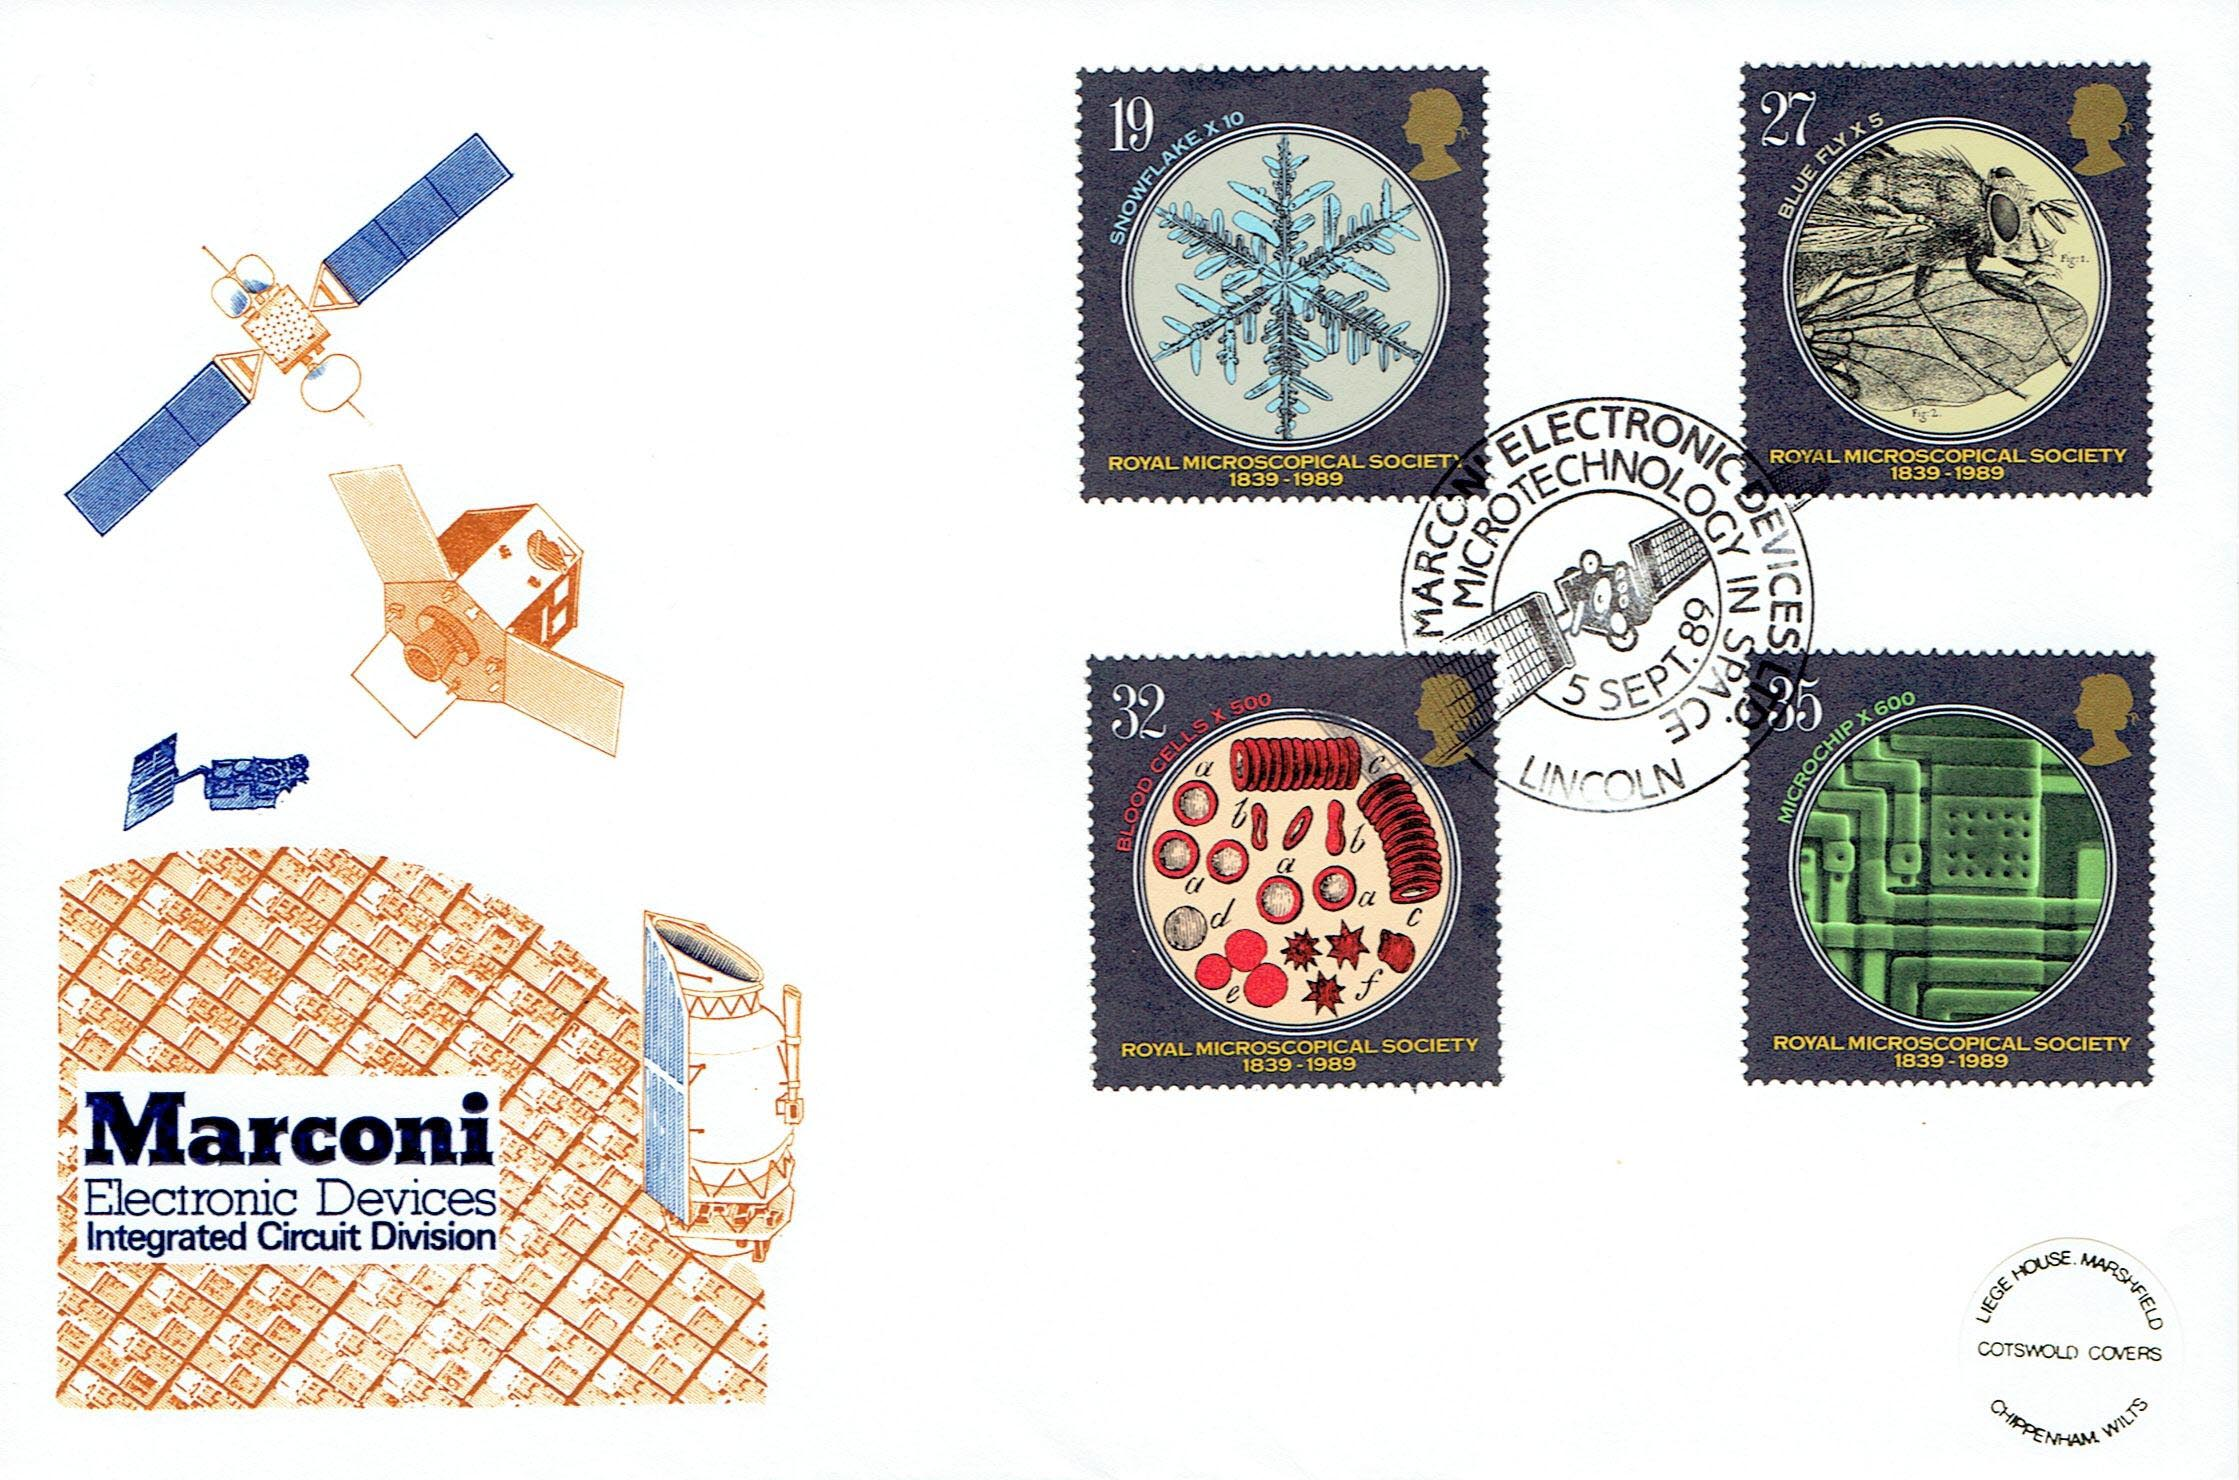 Marconi Microtechnology Stamps (first-day cover)